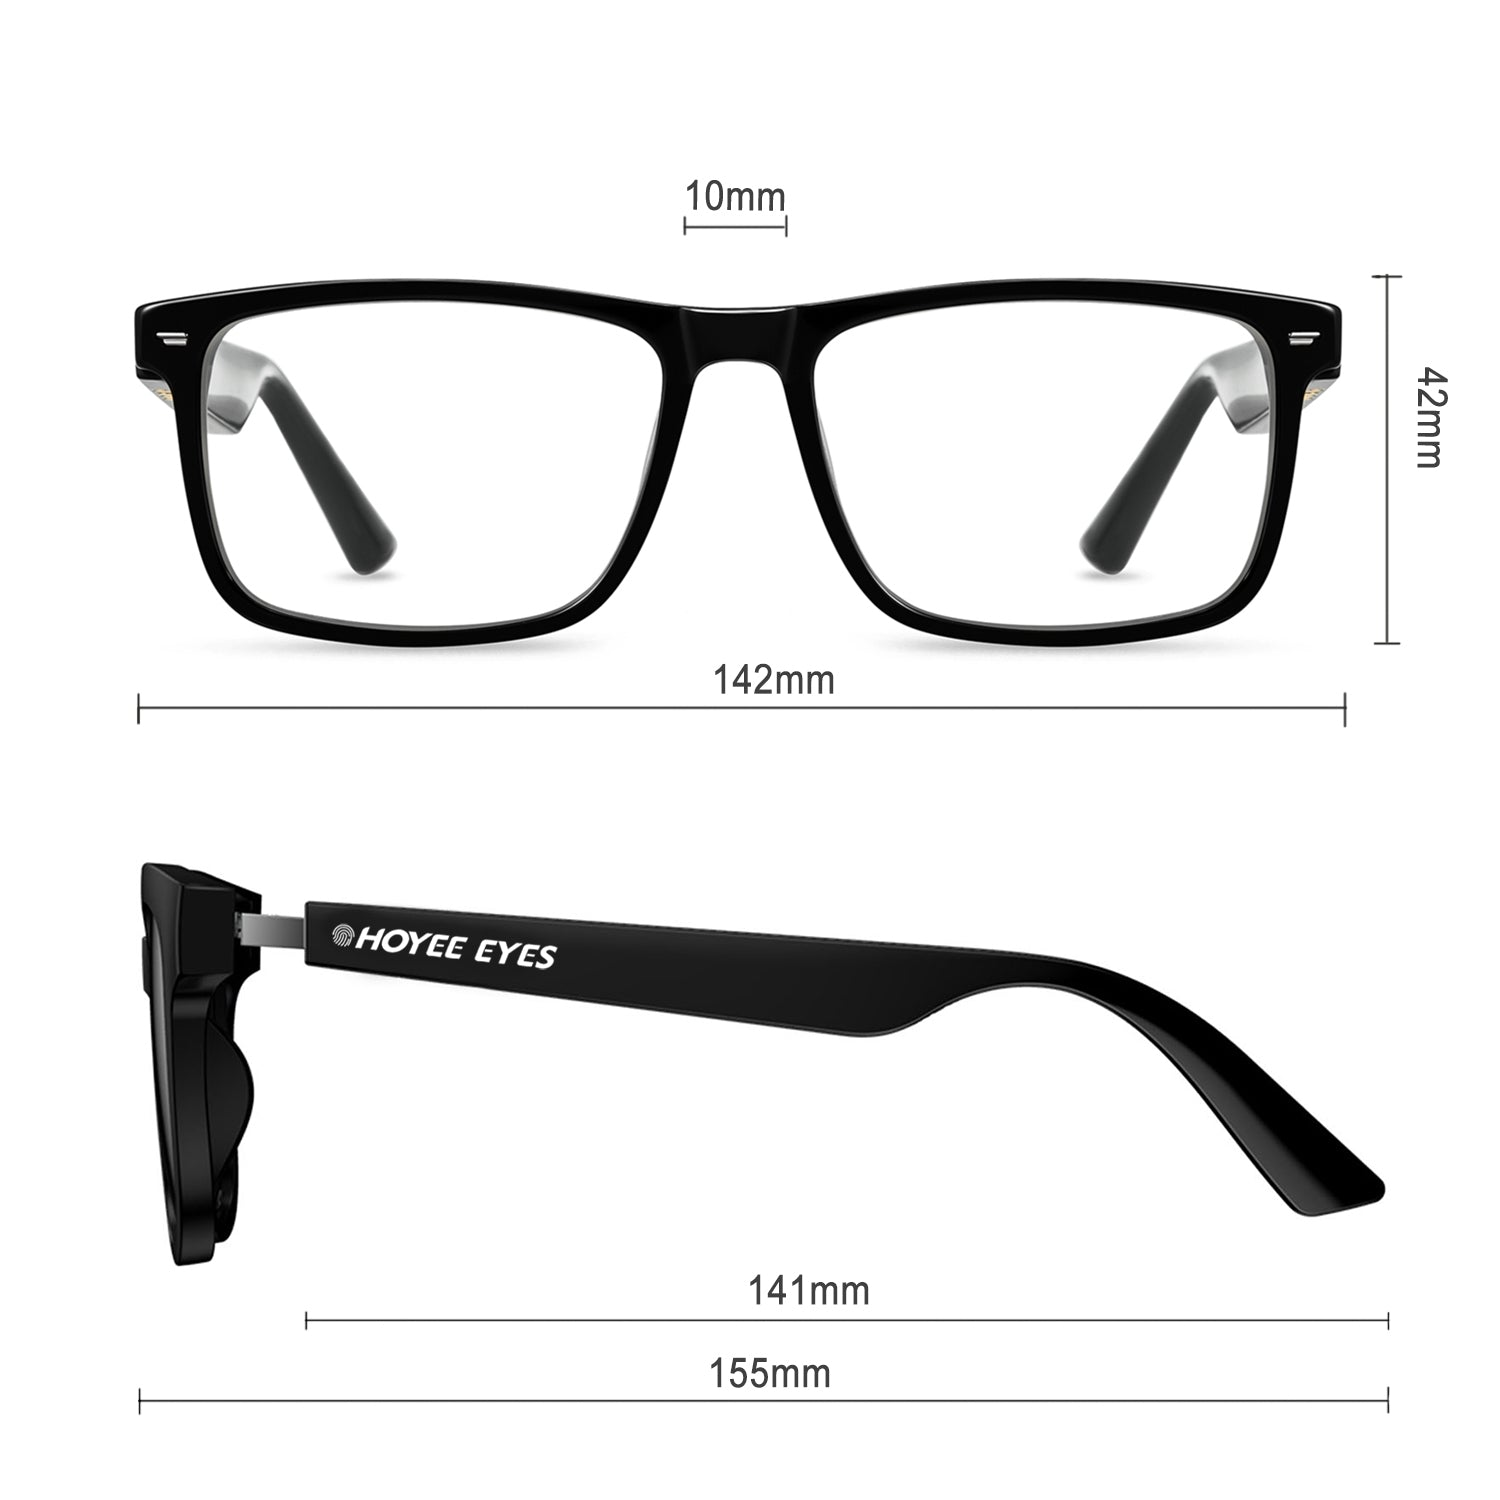 hoyee eyes envision smart glasses dimension